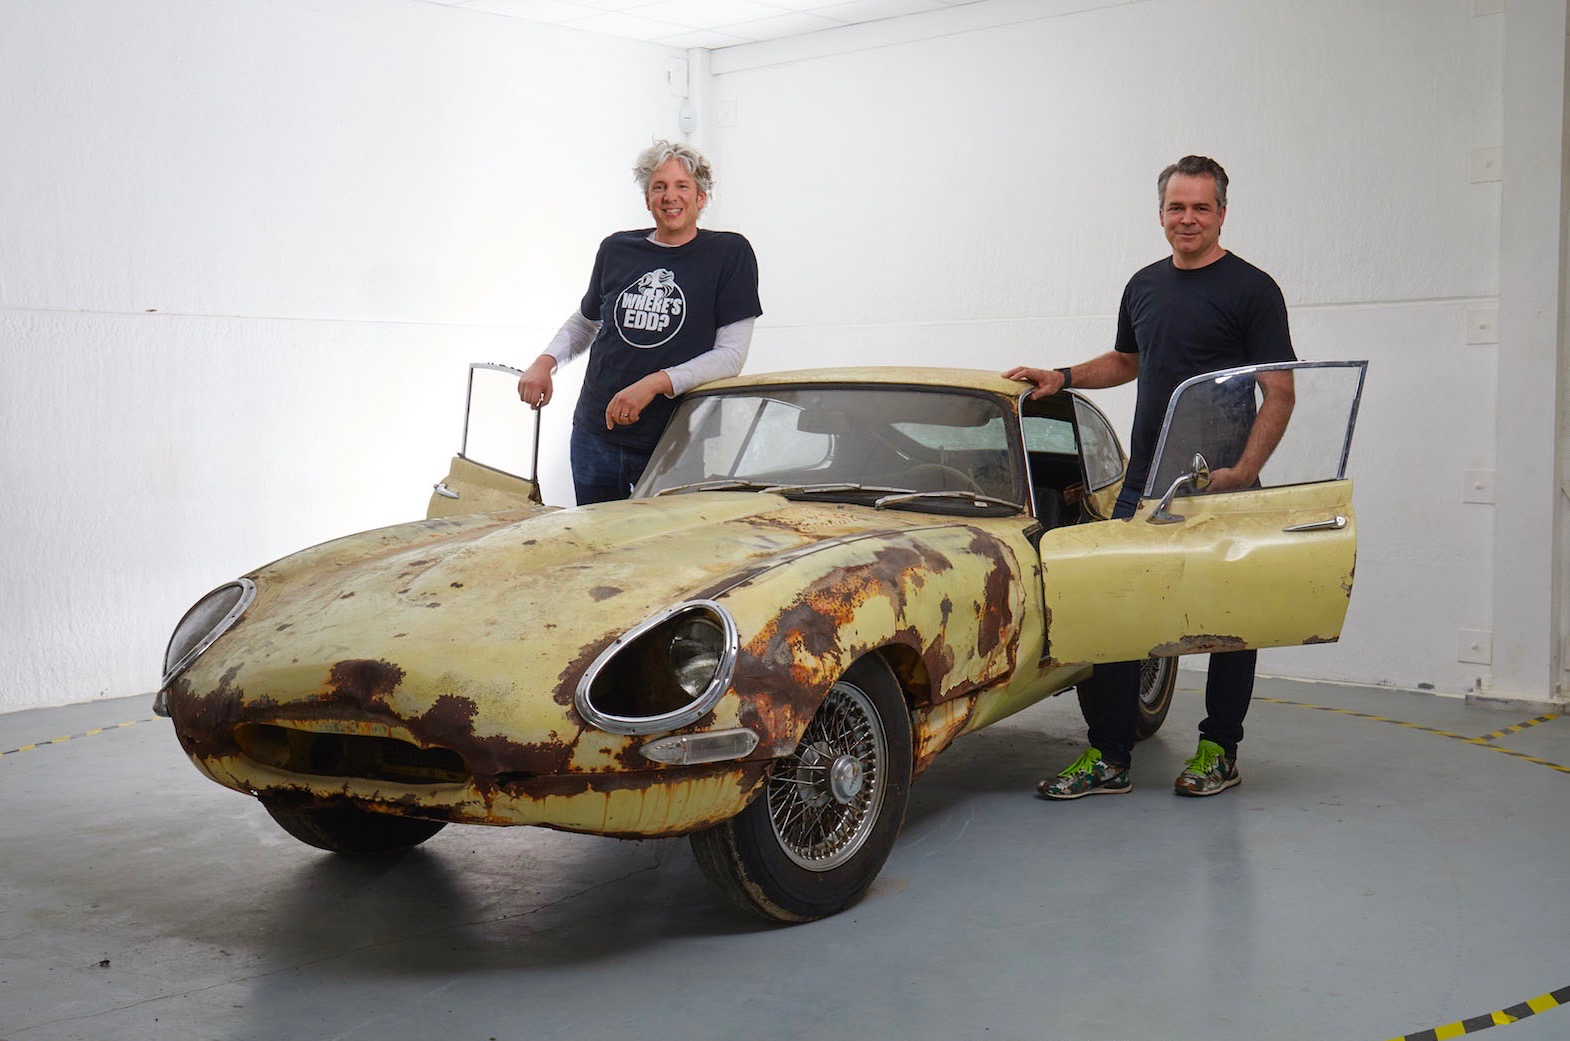 Edd China, Al Cox and a Jaguar E-type they aim to restore